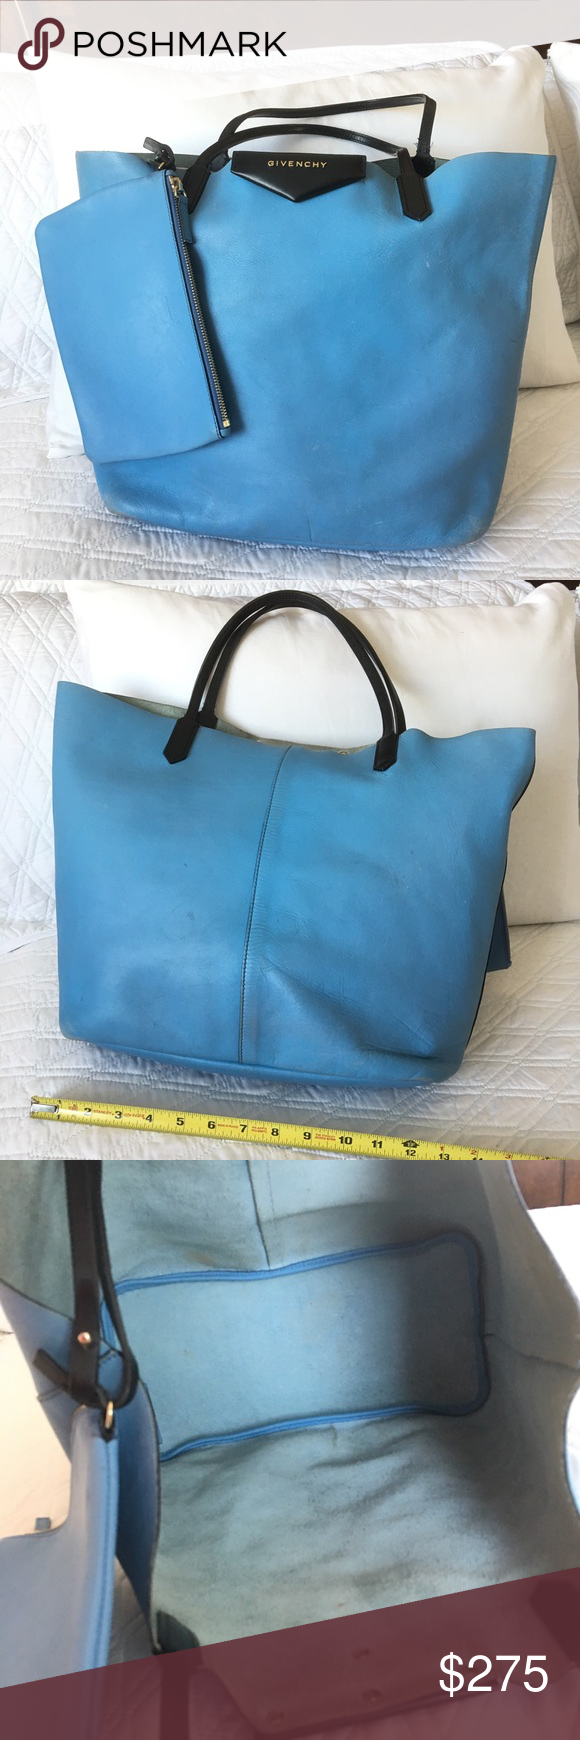 b1910d341f Authentic Givenchy Leather Tote Authentic! Gorgeous blue leather tote w   pouch from Givenchy💕